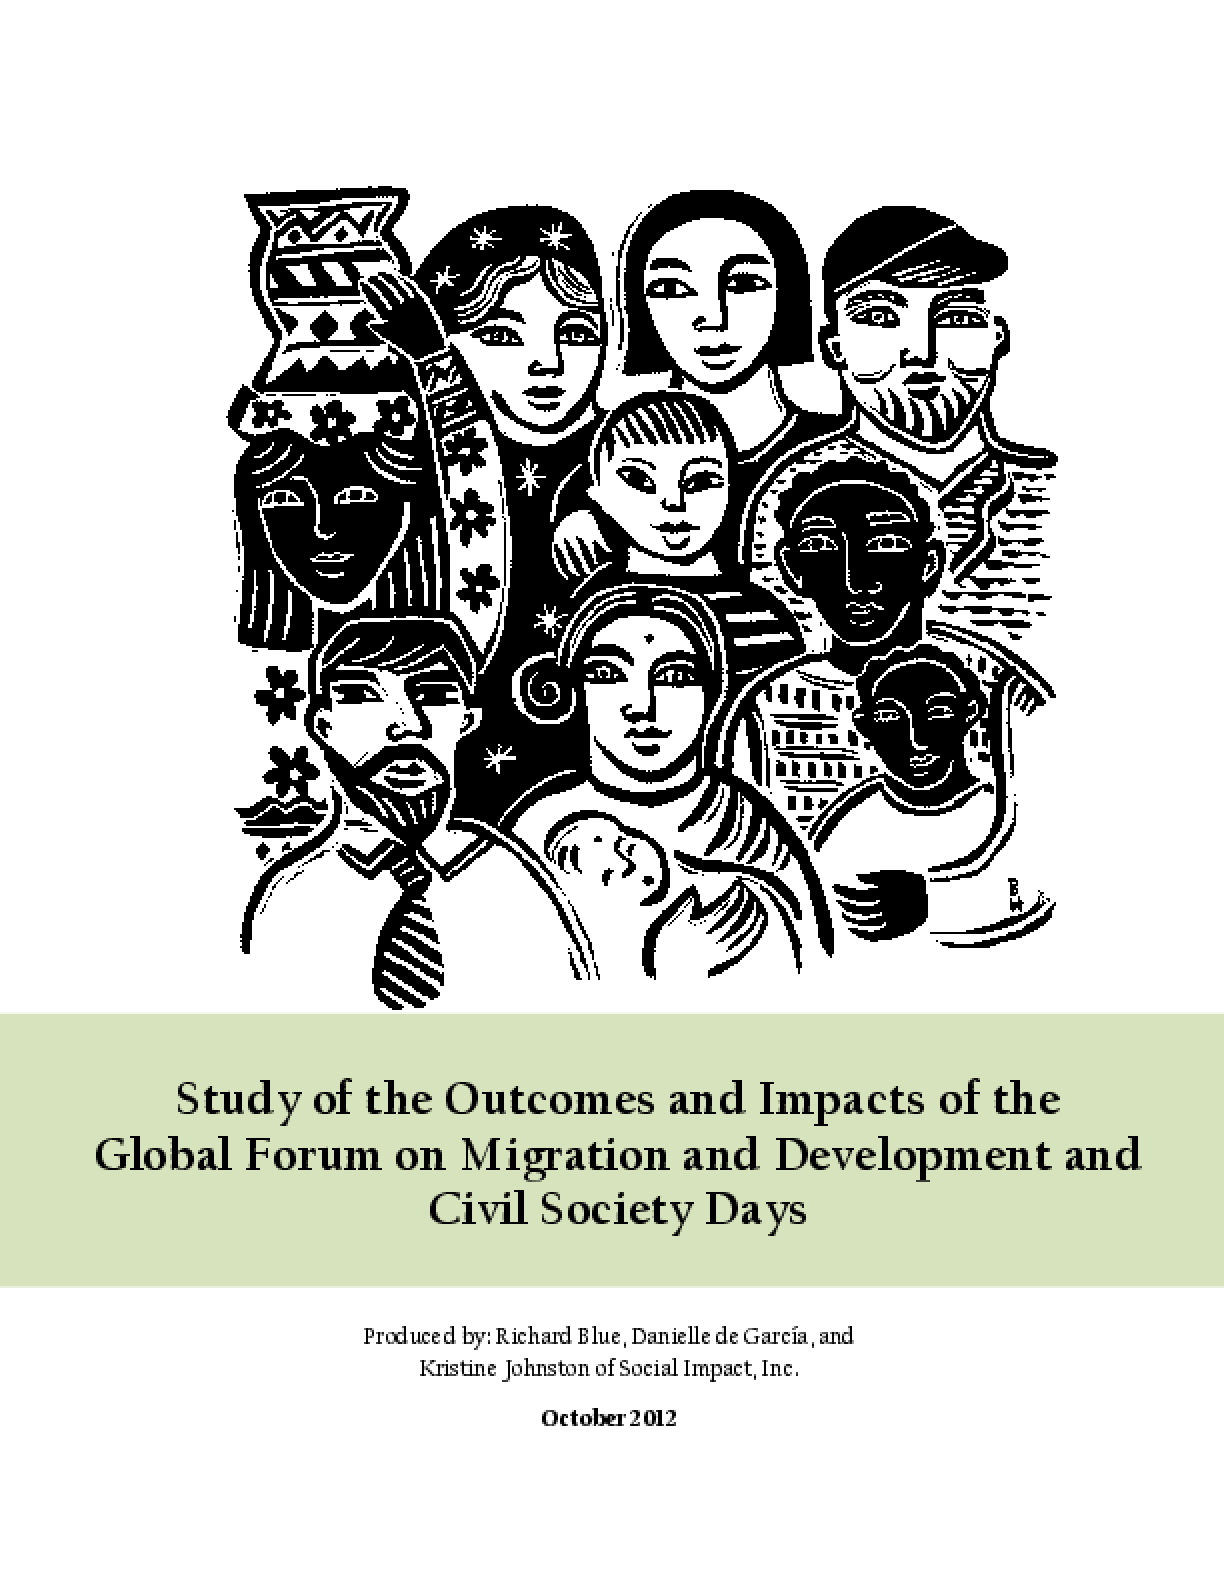 Study of the Outcomes and Impacts of the Global Forum on Migration and Development and Civil Society Days